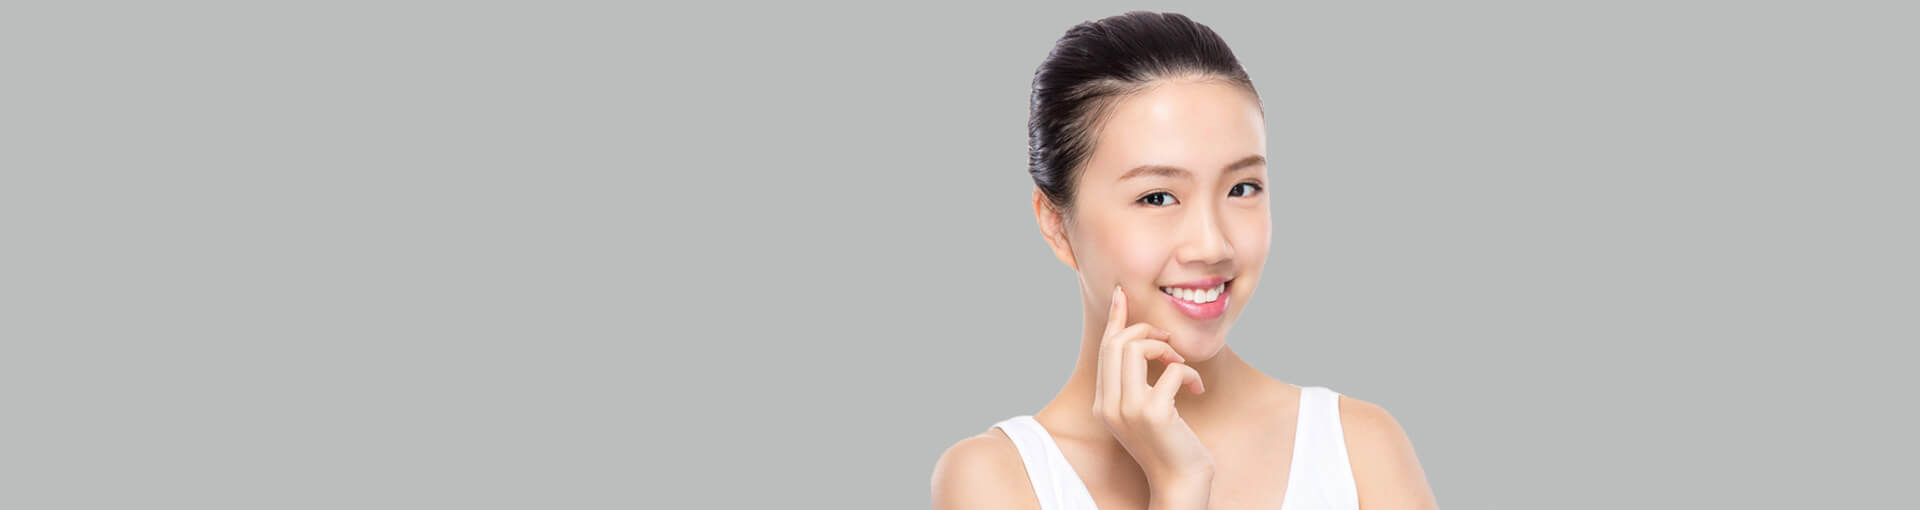 Fractora/Laser Resurfacing - drs skin care